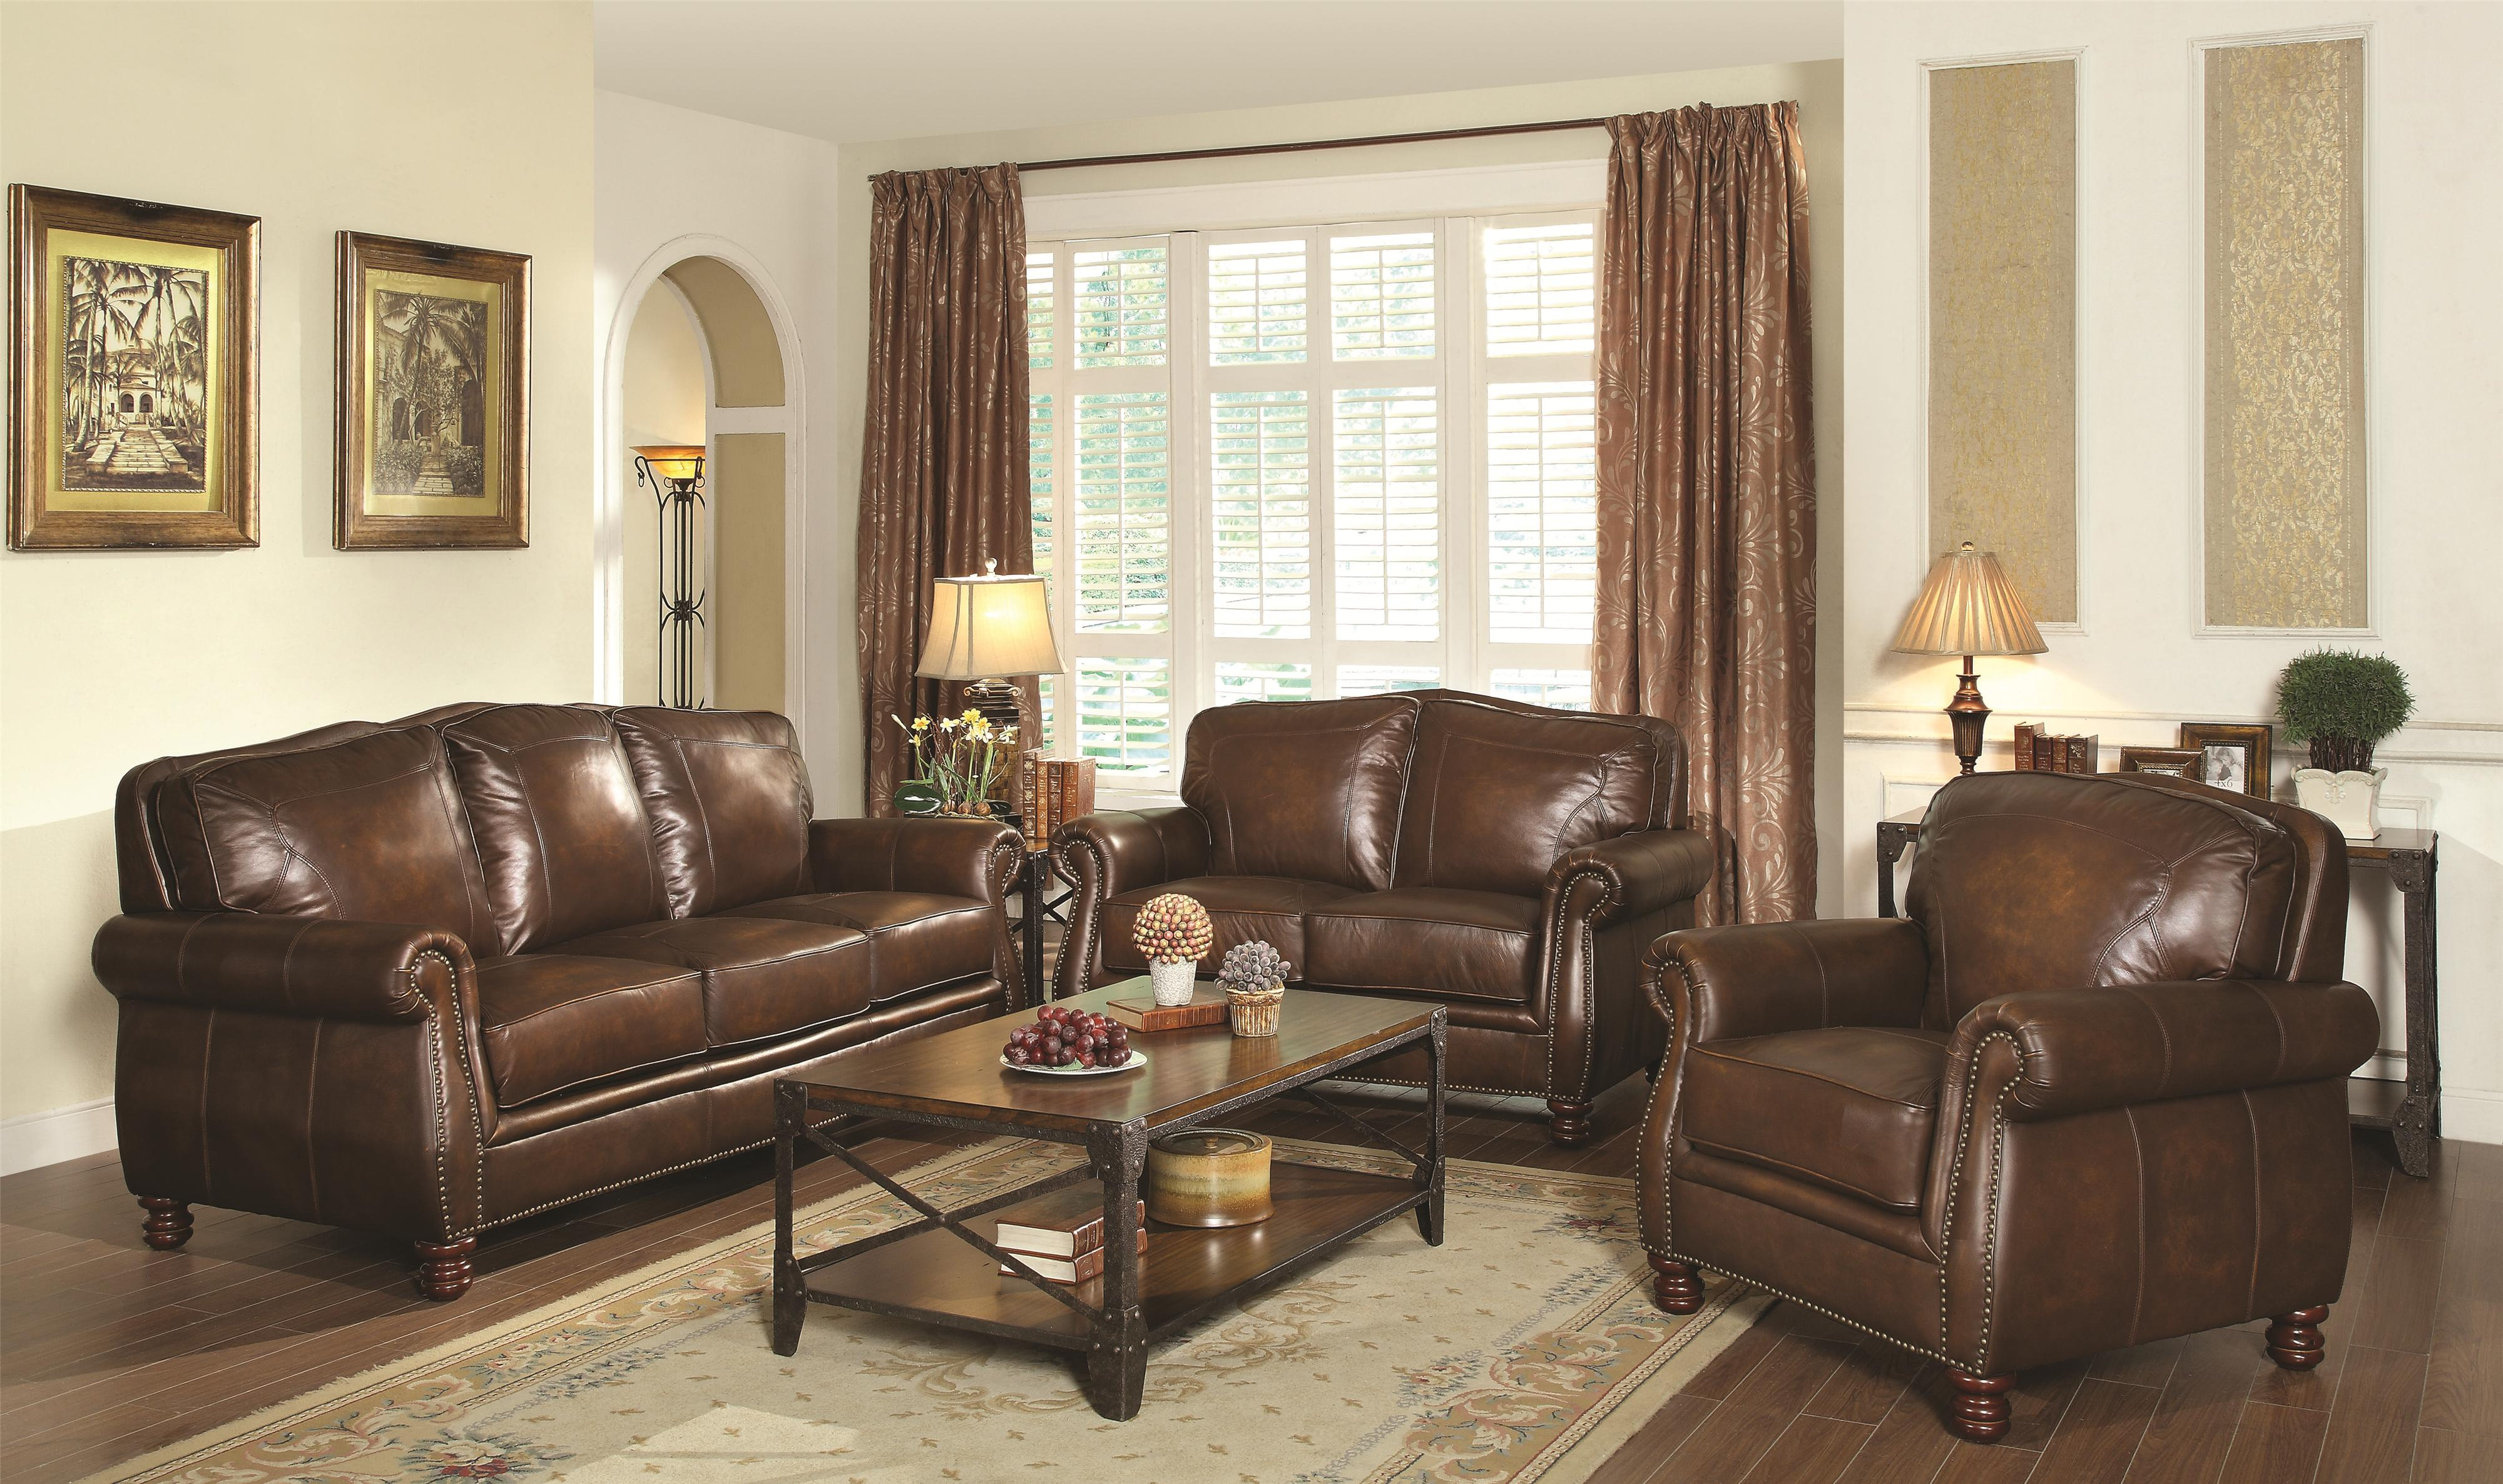 Coaster Montbrook Stationary Living Room Group - Item Number: 50398 Living Room Group 1